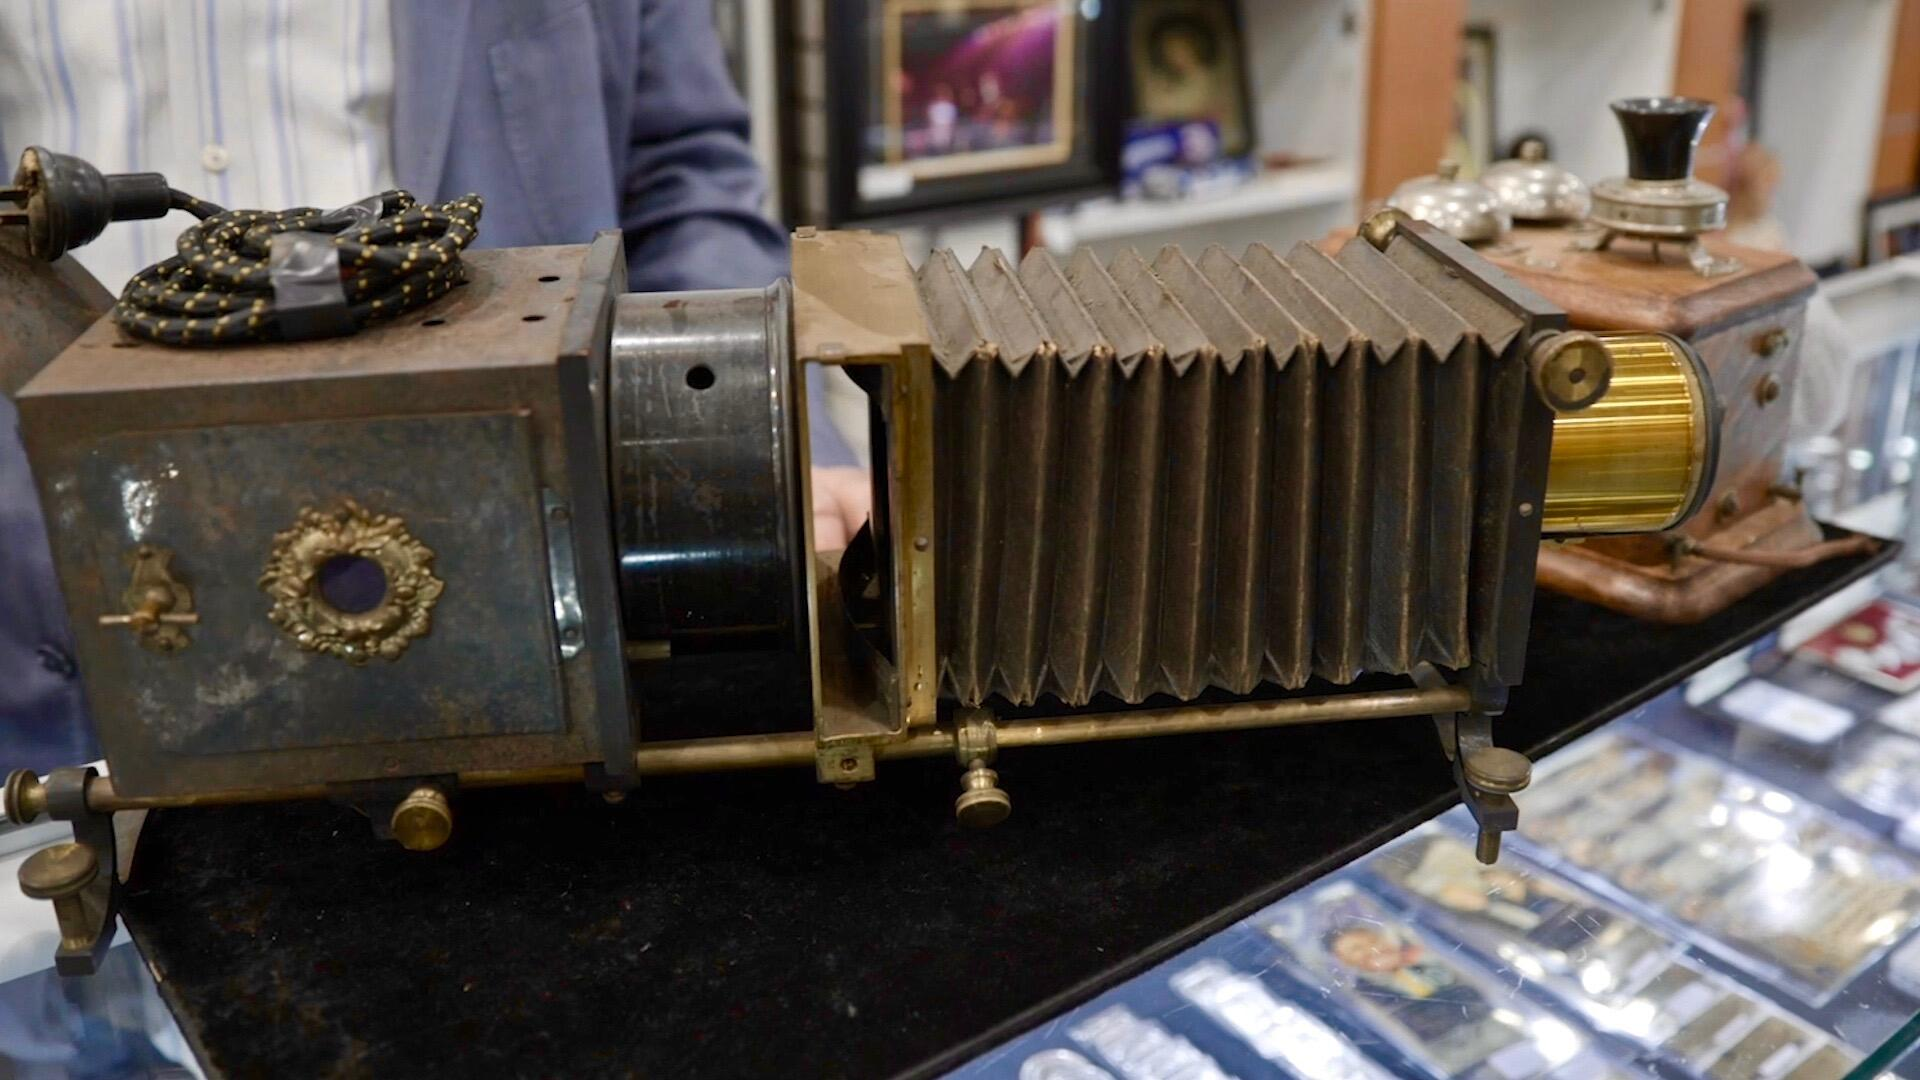 Slide projector from the 1920s